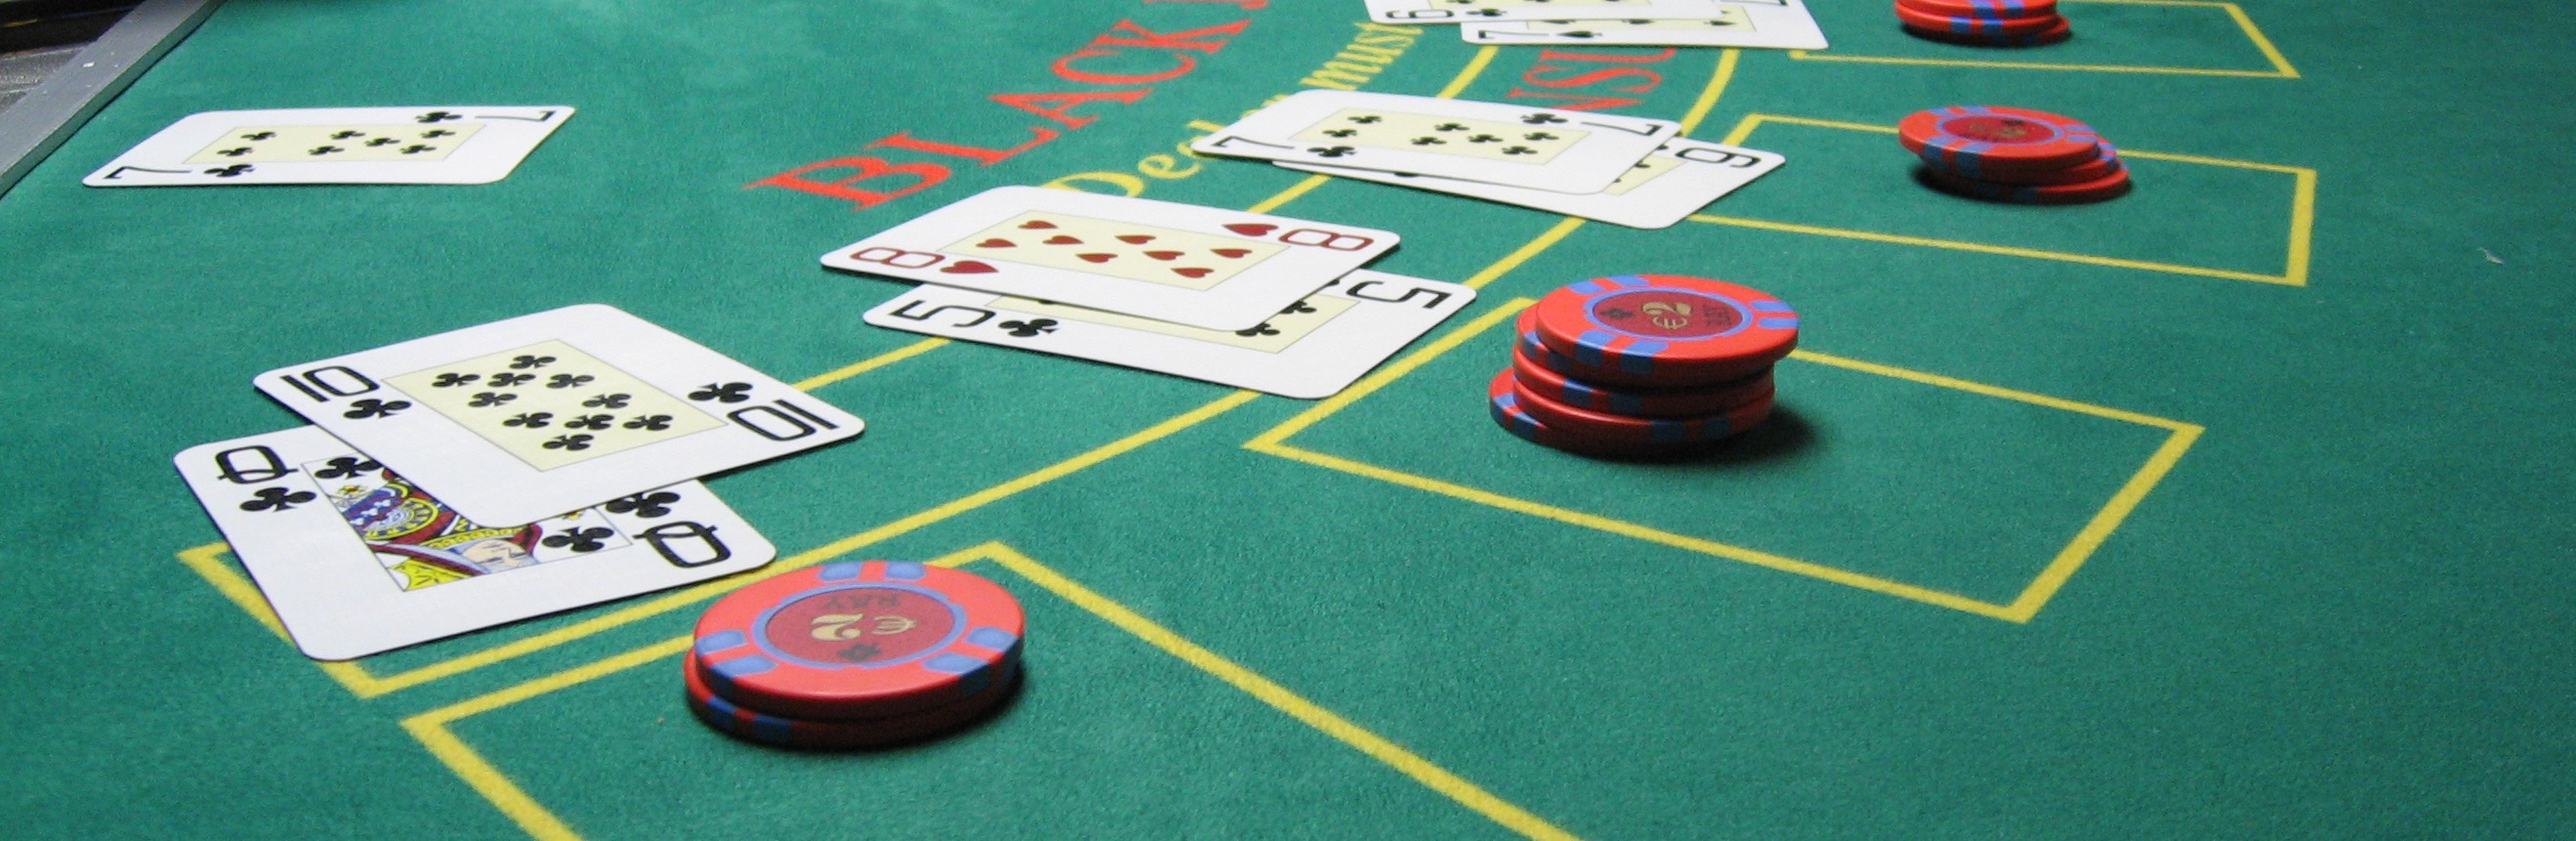 How to win texas holdem every time